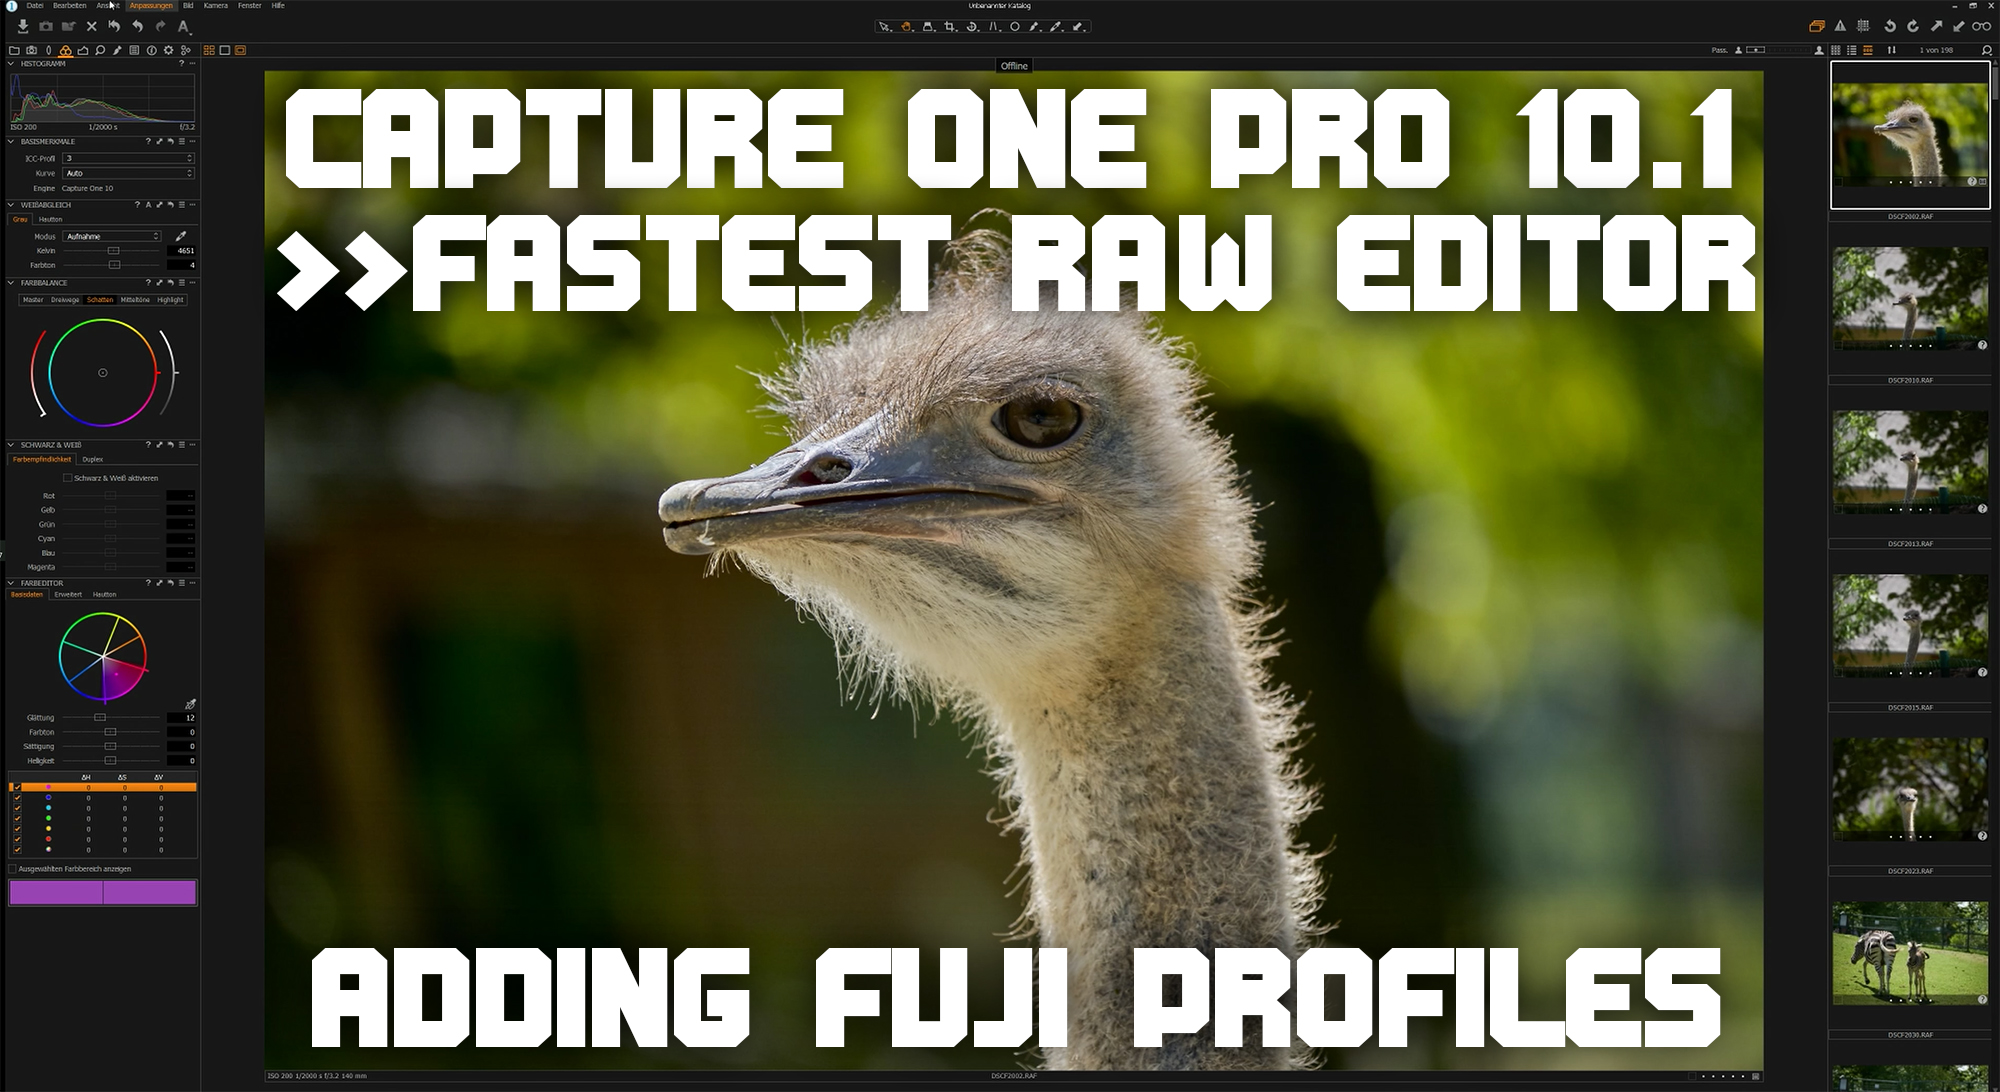 Capture One Pro 10.1 – Fastest Editor + Adding Fuji Profiles